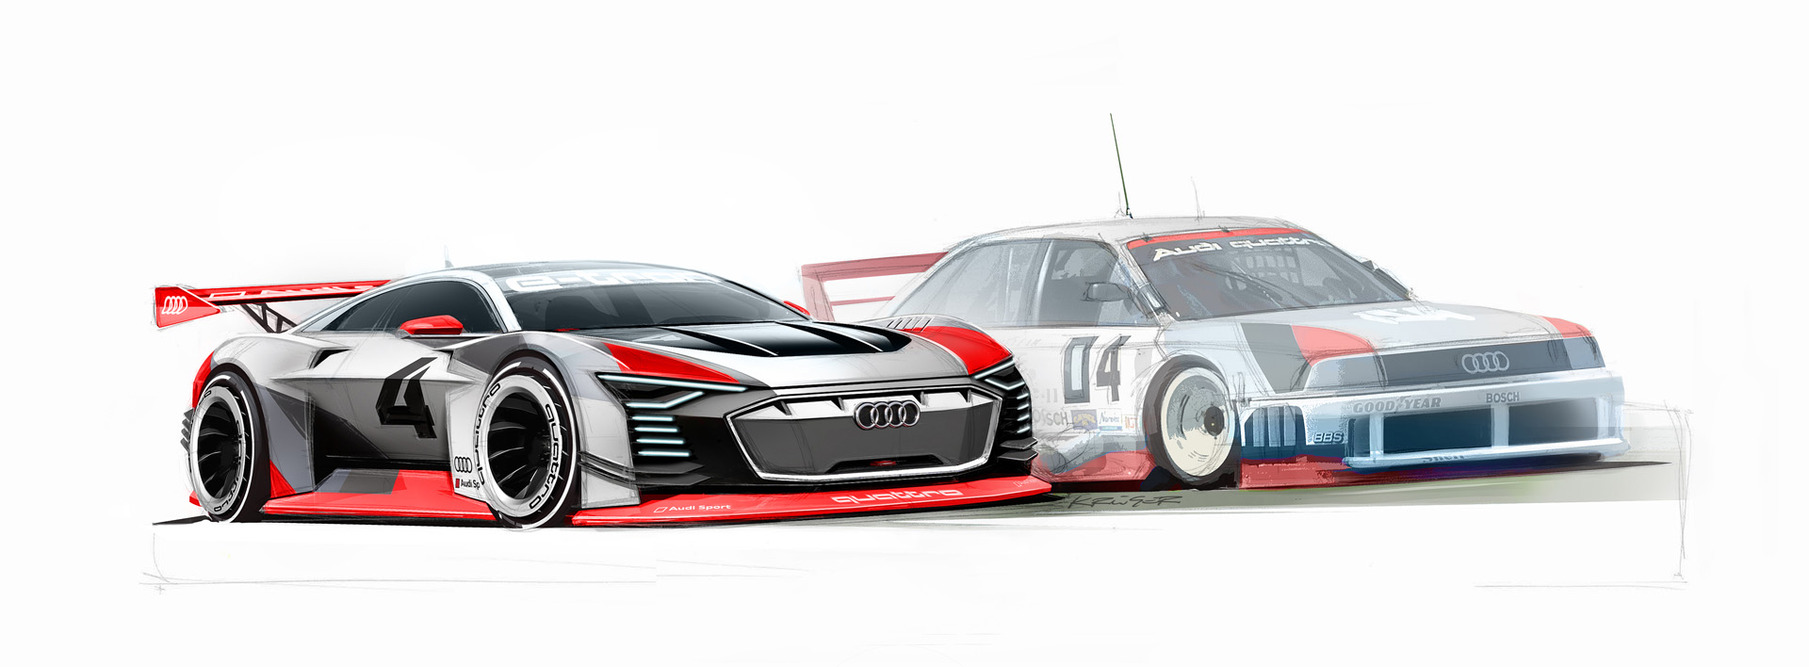 "Sketch of the ""Audi Vision Gran Turismo"" next to the iconic Audi 90 IMSA GTO from the 1989 North American IMSA series."